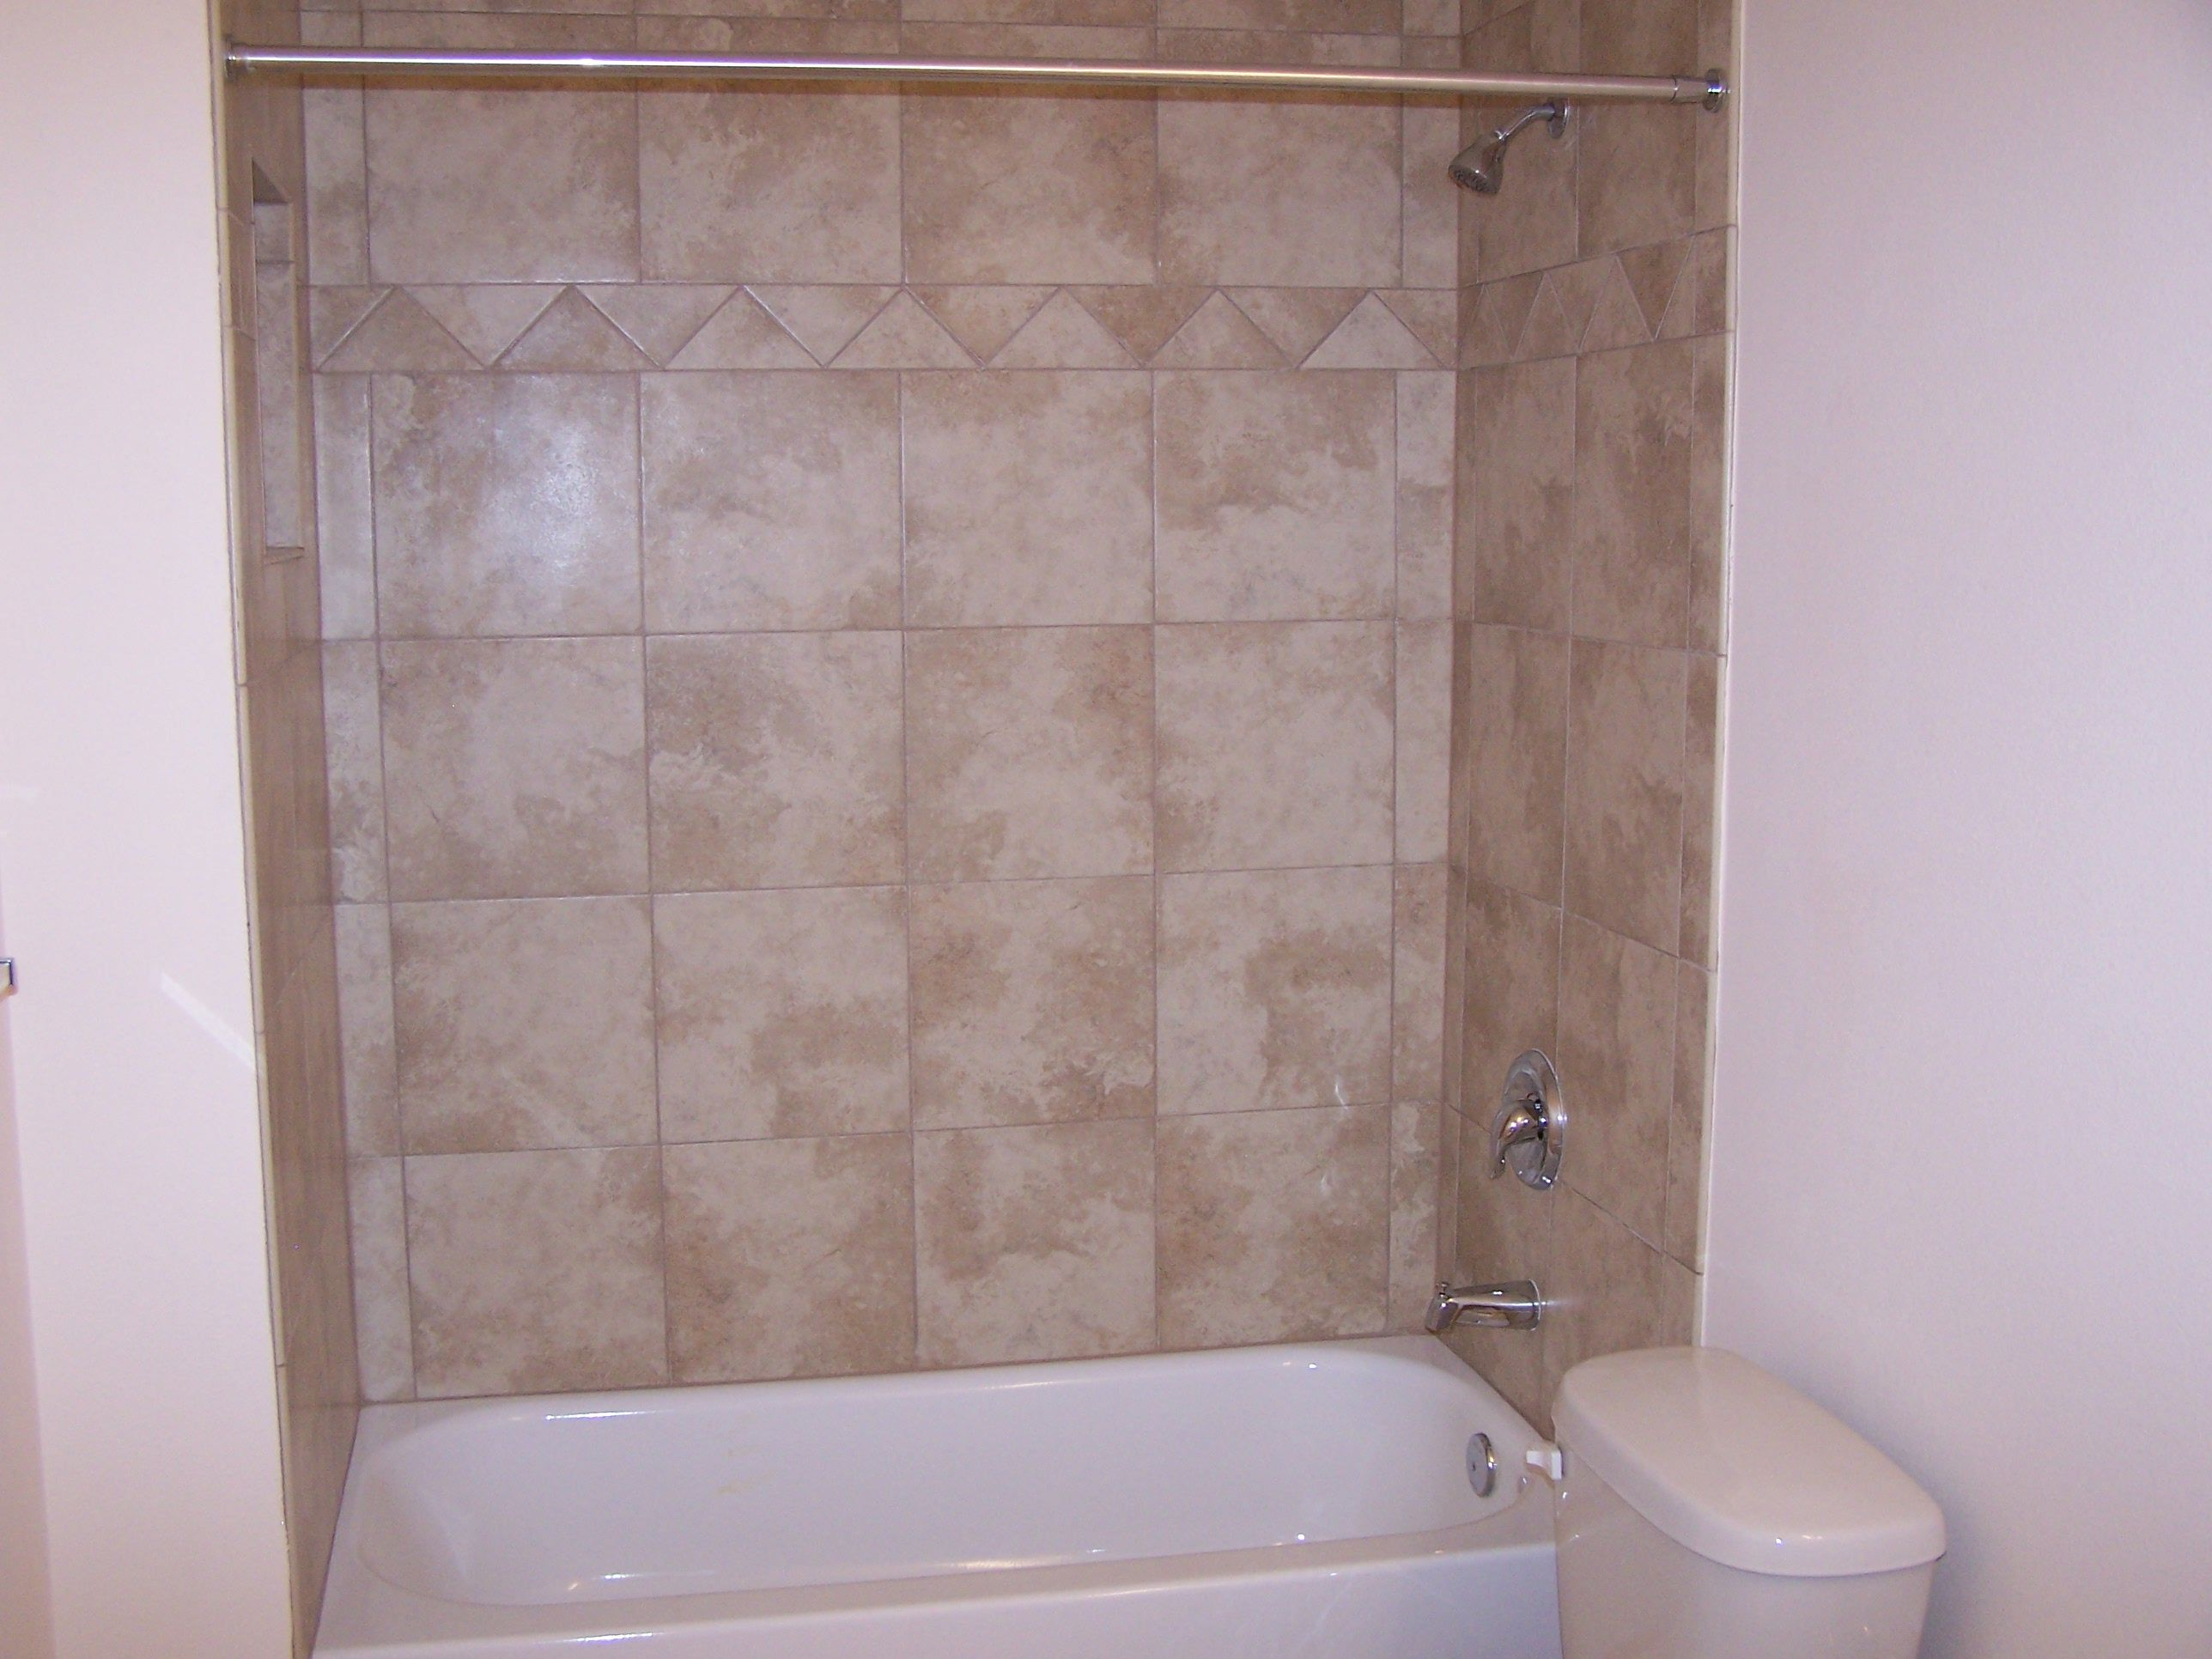 bathroom ceramic wall tile ideas ceramic bathroom tile 12x12 tile my house ideas 22039